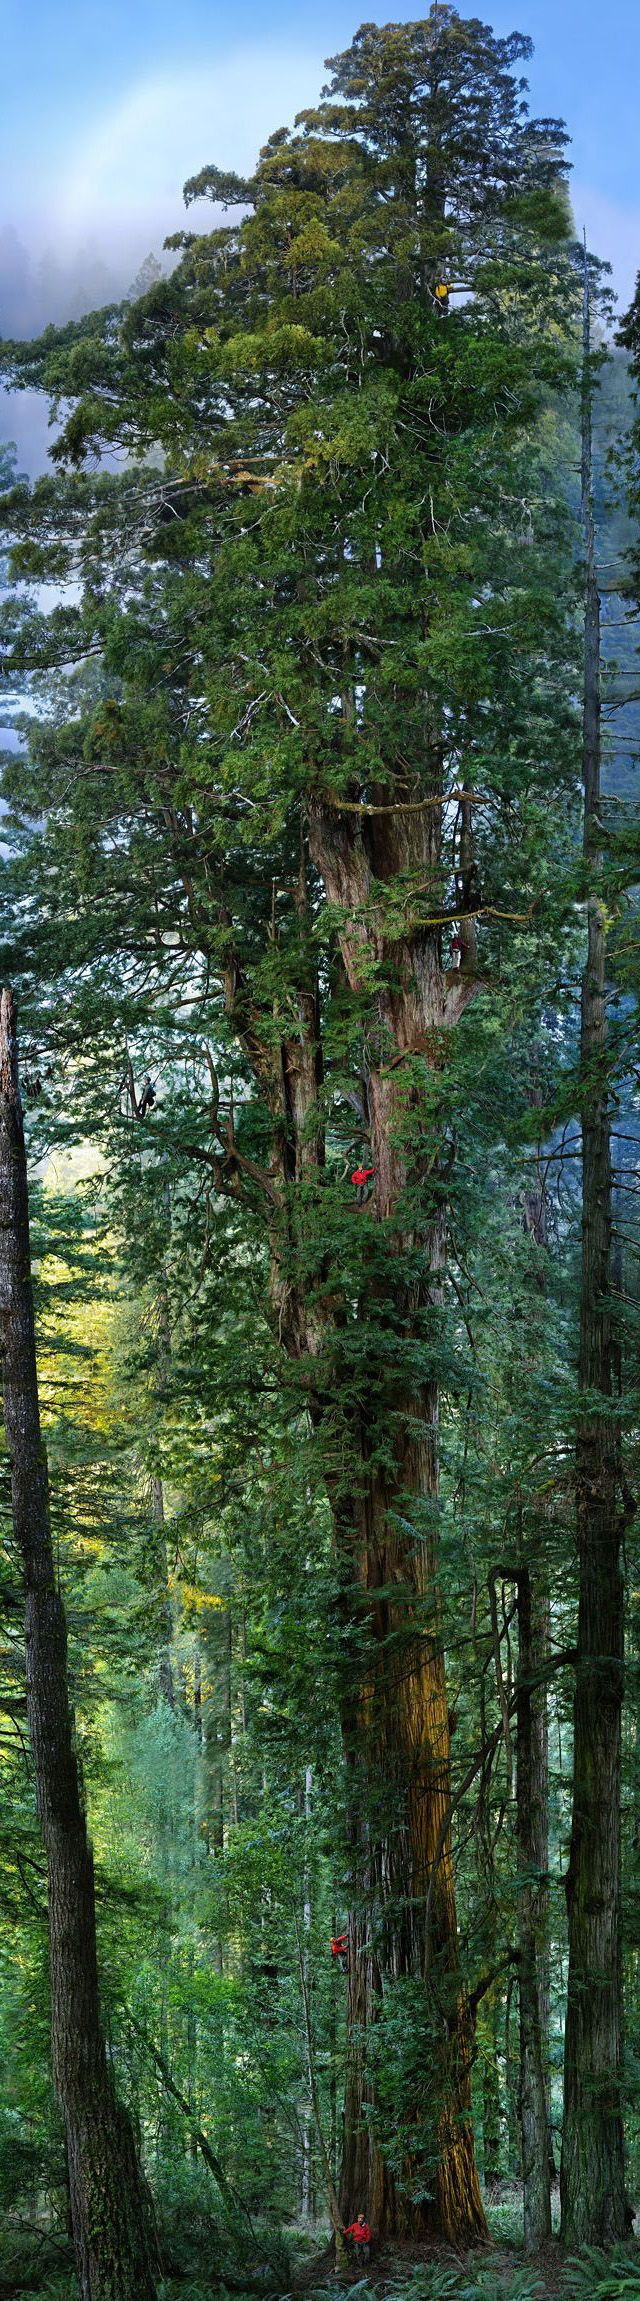 """""""Hyperion"""", the tallest redwood, is 115.5 meters tall and can be found in the Redwood National Park near San Francisco."""